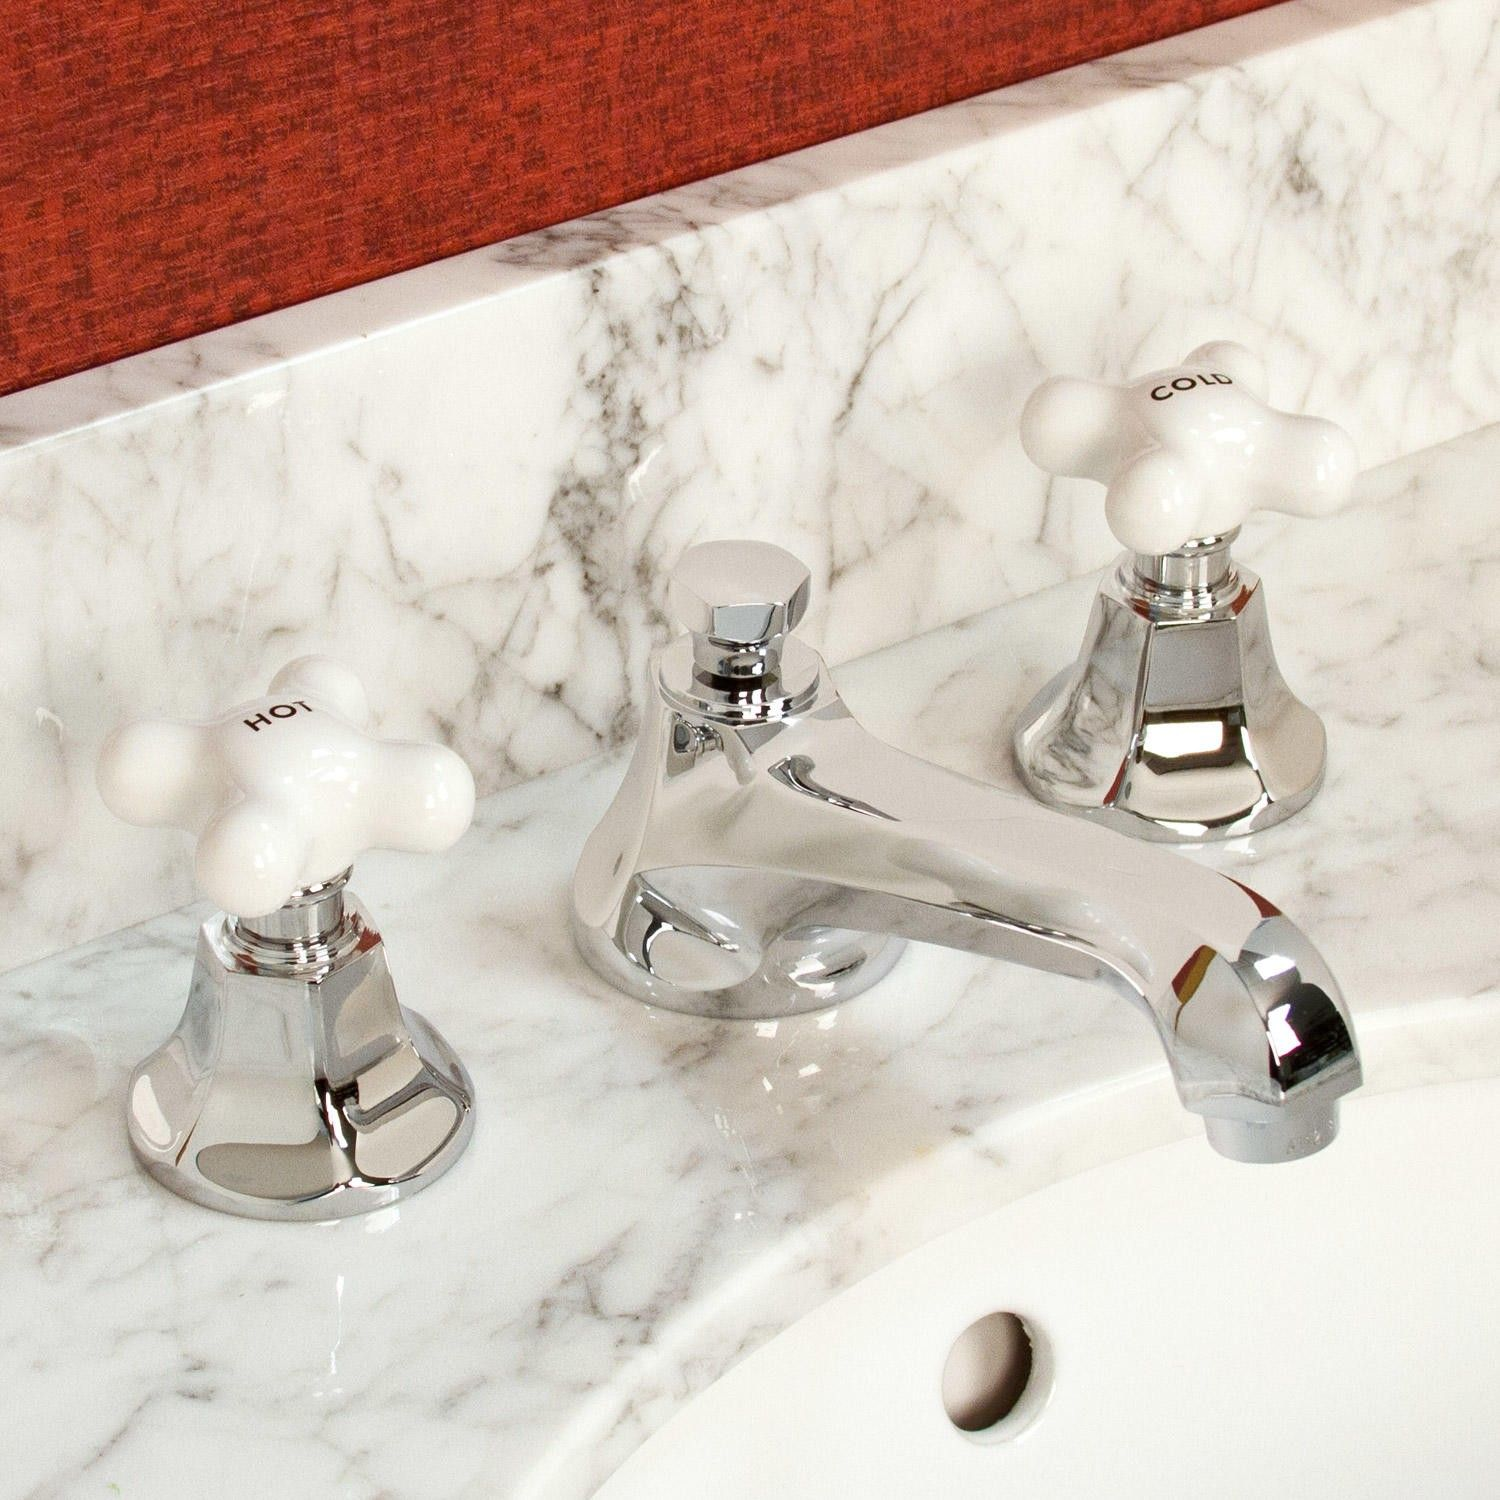 restoration faucets hardware vintagebathroom